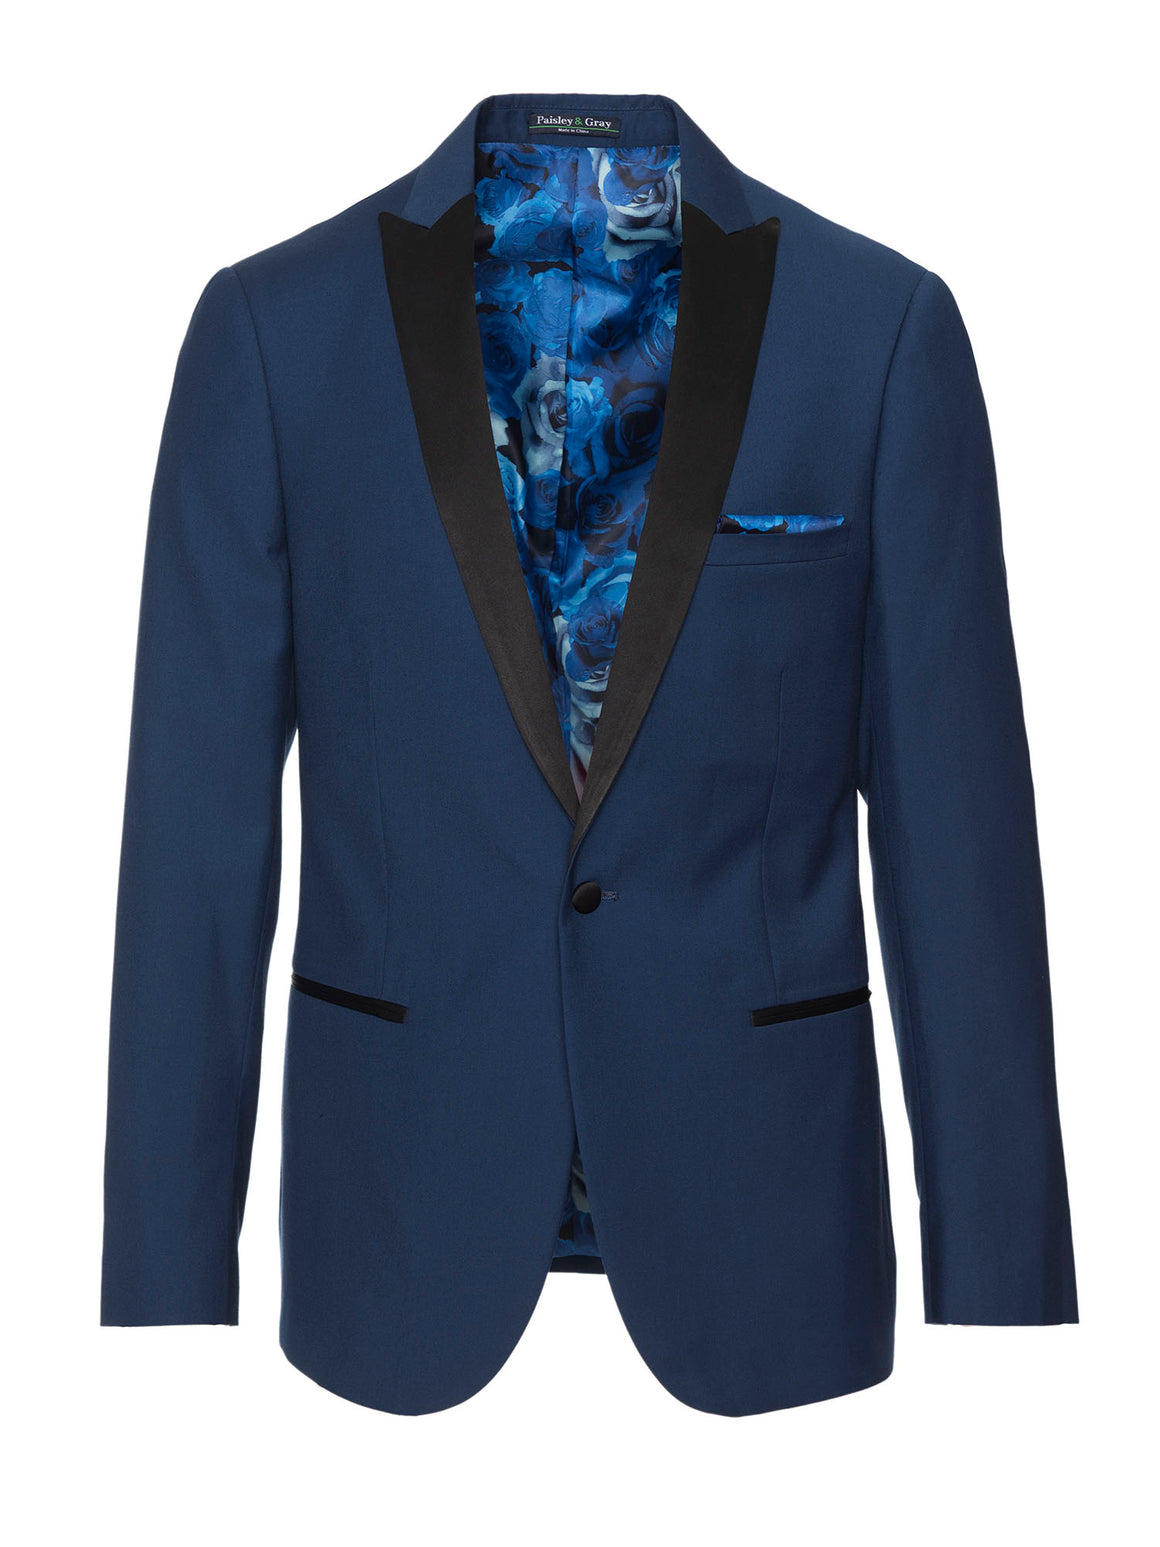 paisley & gray blue solid slim fit peak lapel basic tuxedo jacket 1894J blue monochromatic floral lining and pocket square black satin lapel, trim & buttons flap pockets